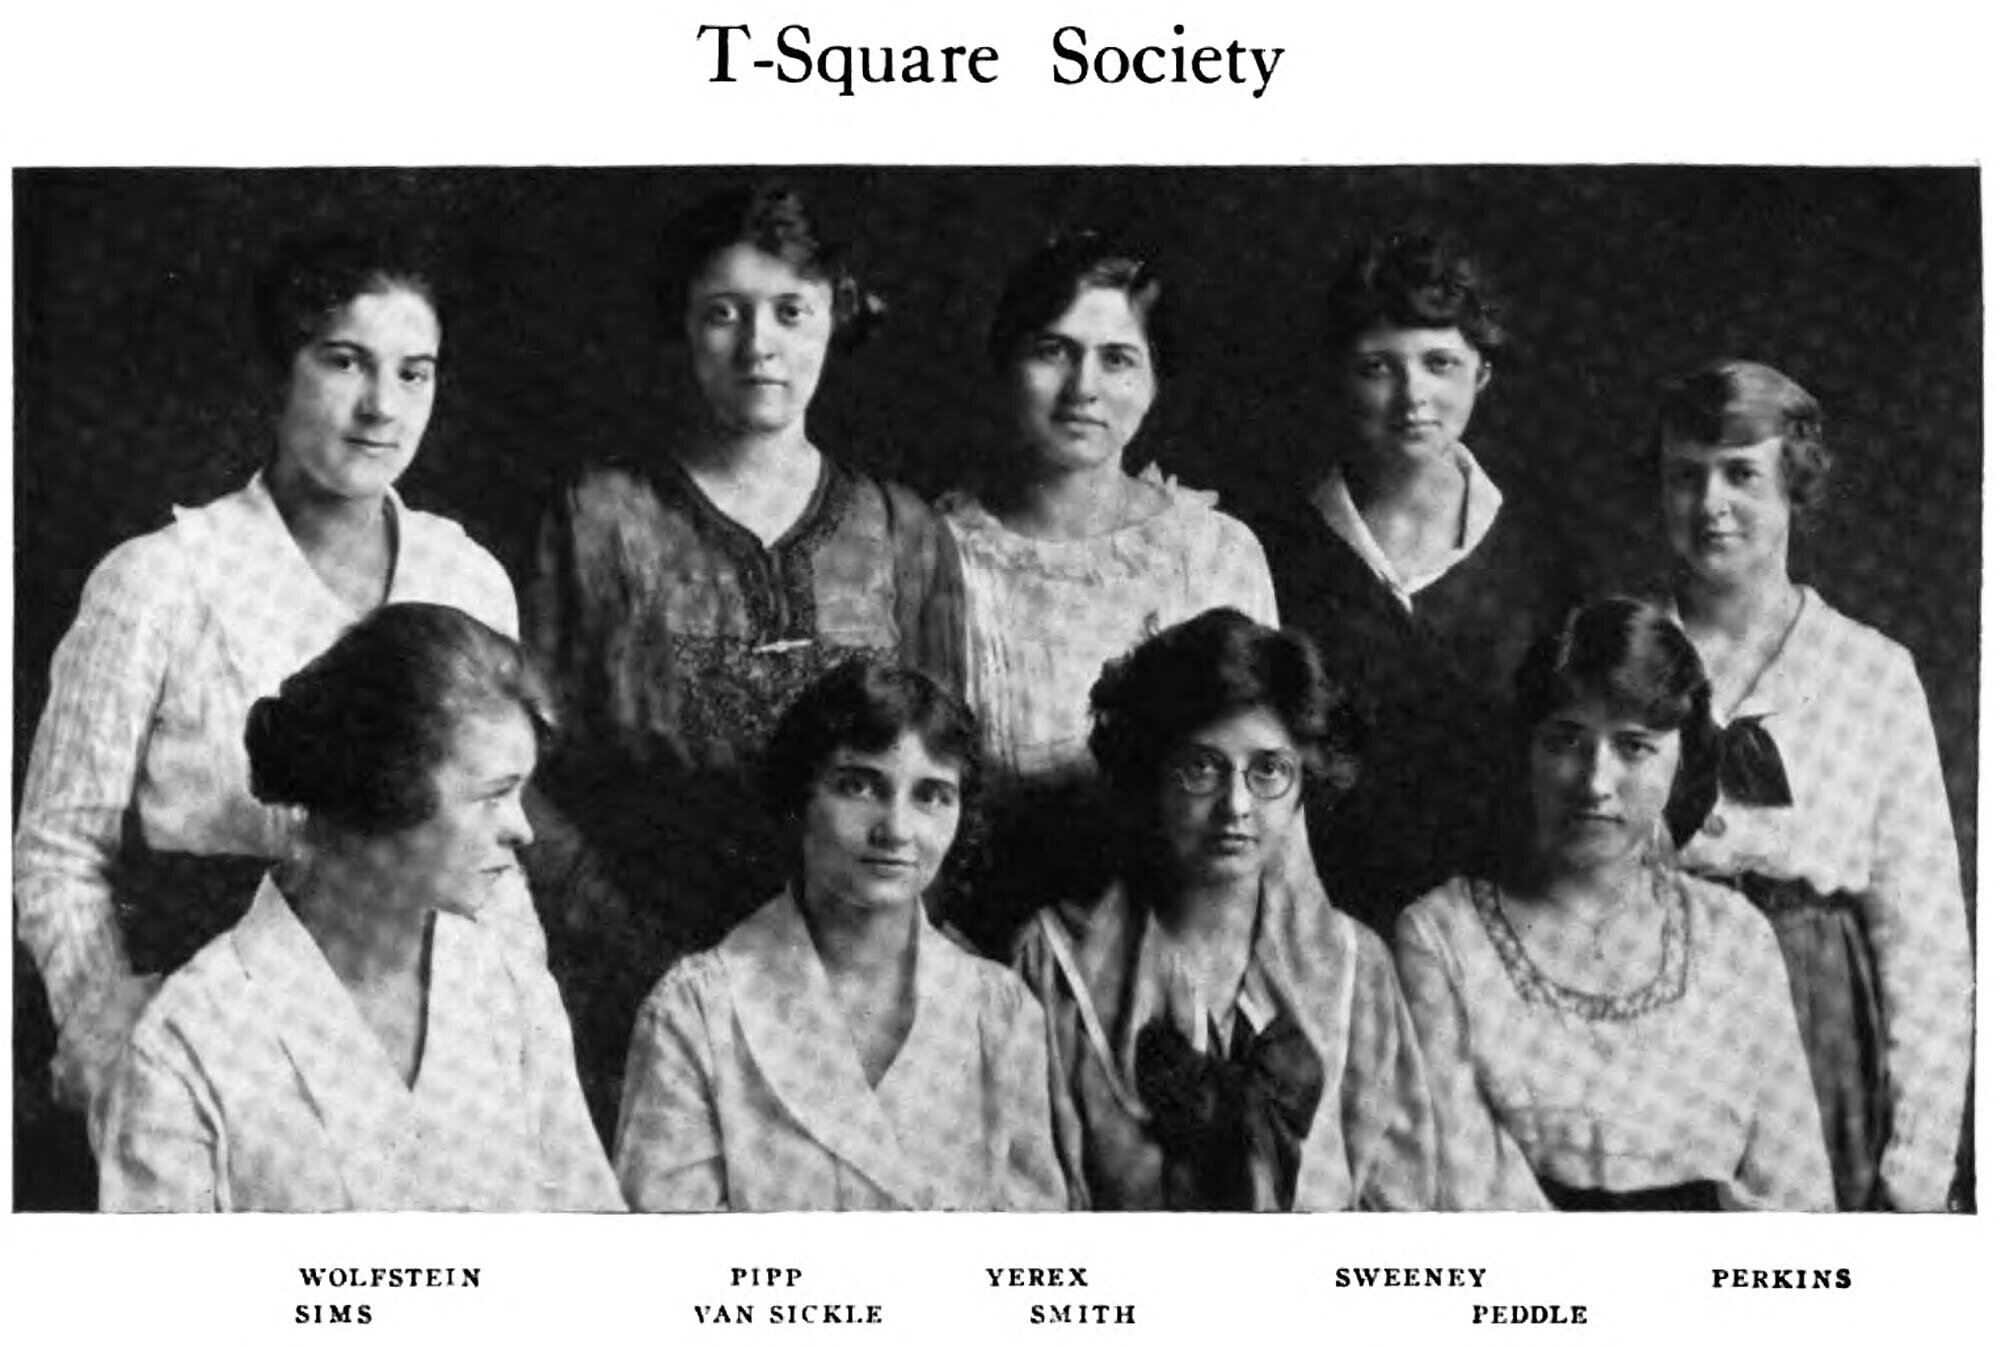 Members of the T-Square Society. (Bertha Yerex, Juliette Peddle, and Ruth Perkins are all depicted in this photograph.)  Michiganensian,  Volume 24, 1920, p. 665.